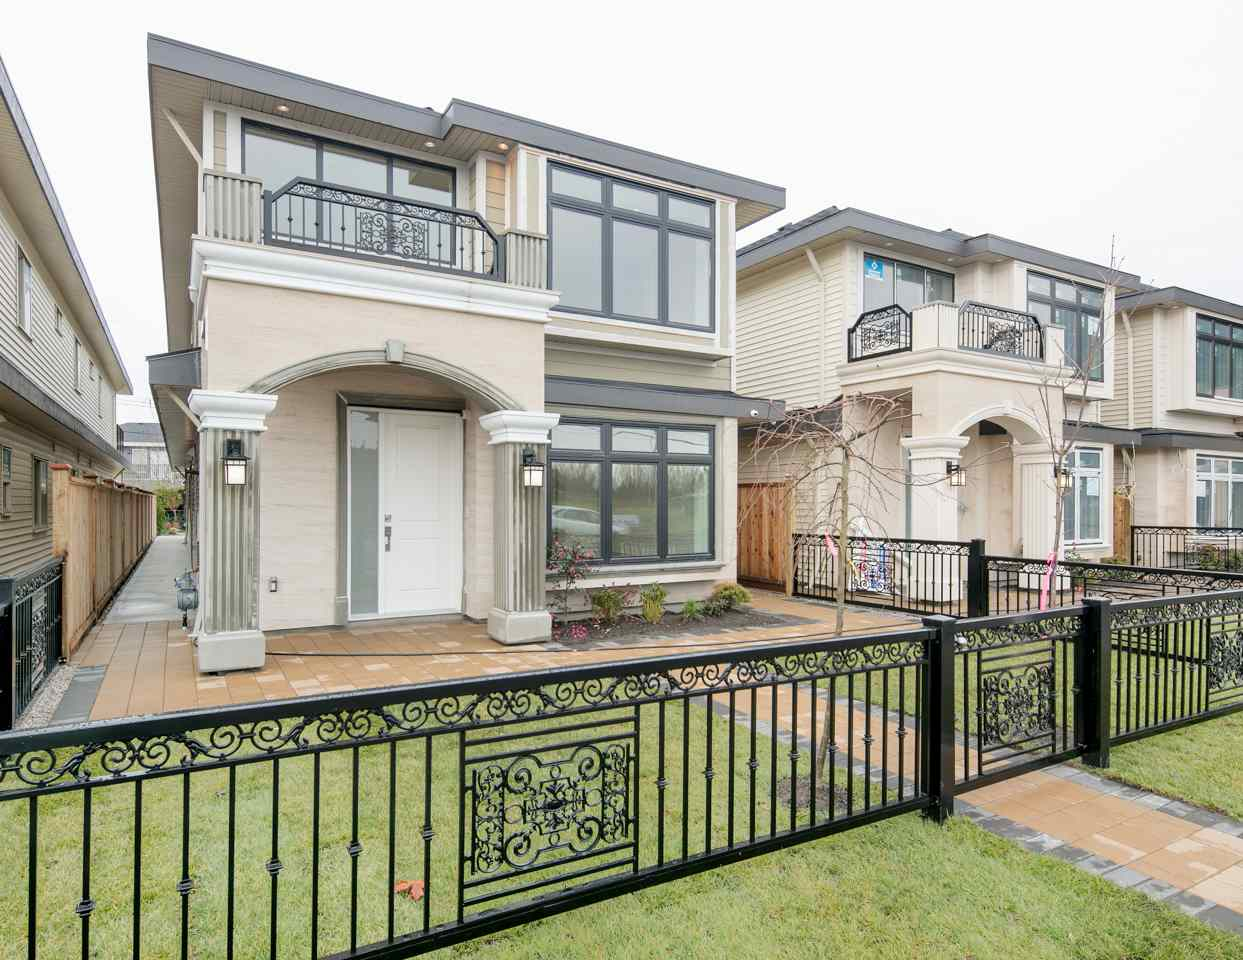 Removed: 5 - 10211 No 5 Road, Richmond, BC - Removed on 2018-12-07 04:12:18